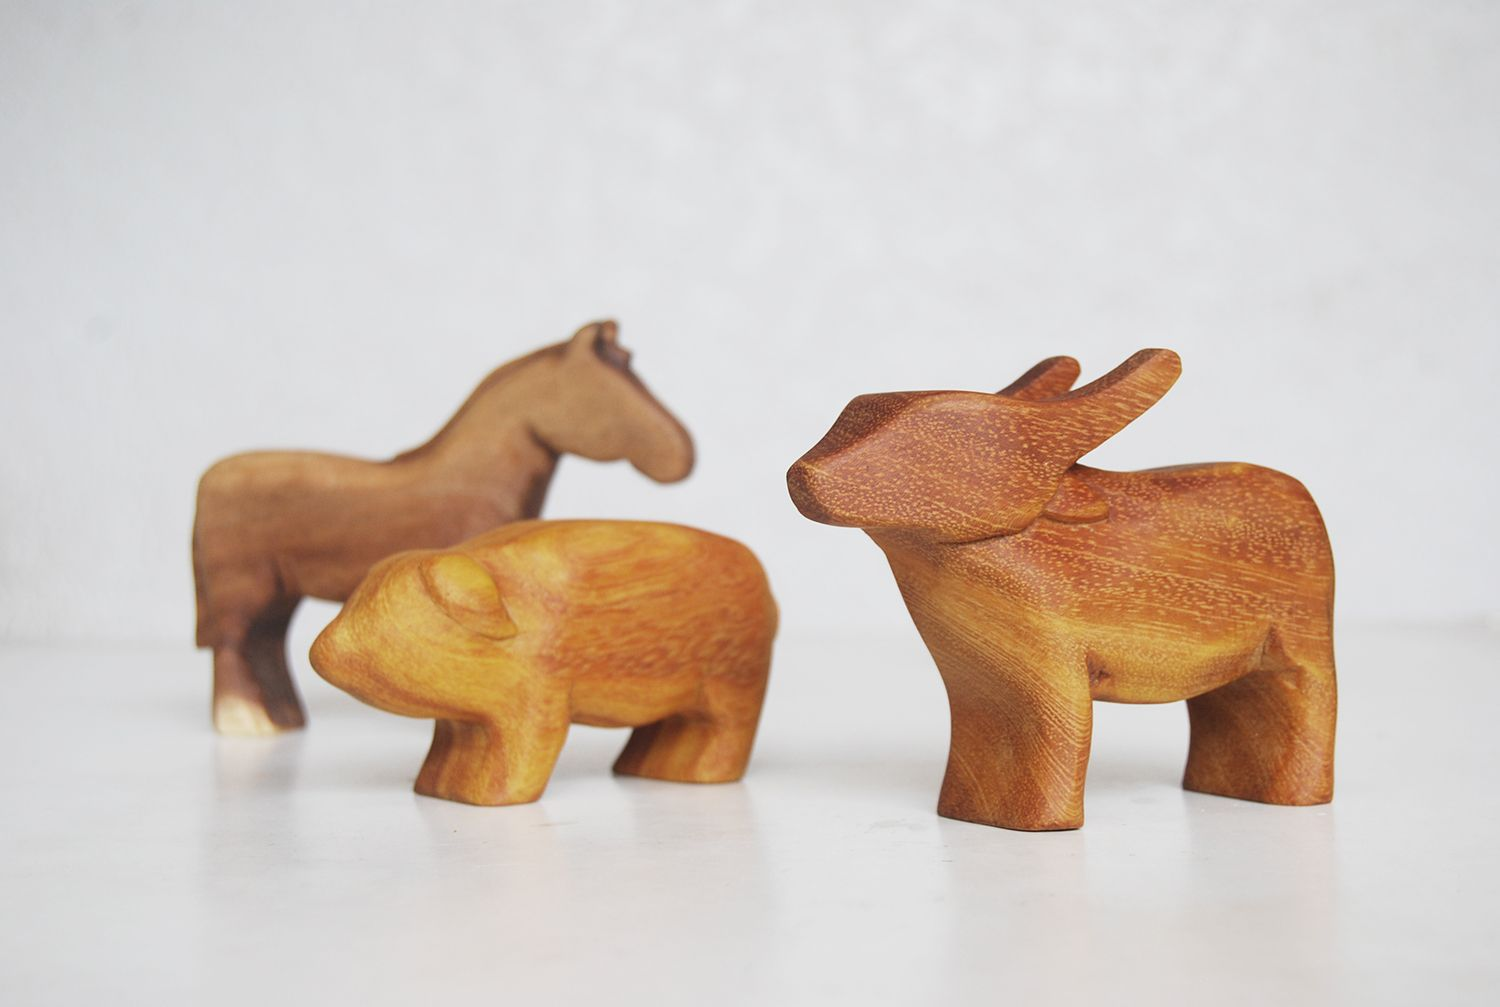 How to wood carve animals woodworking pinterest